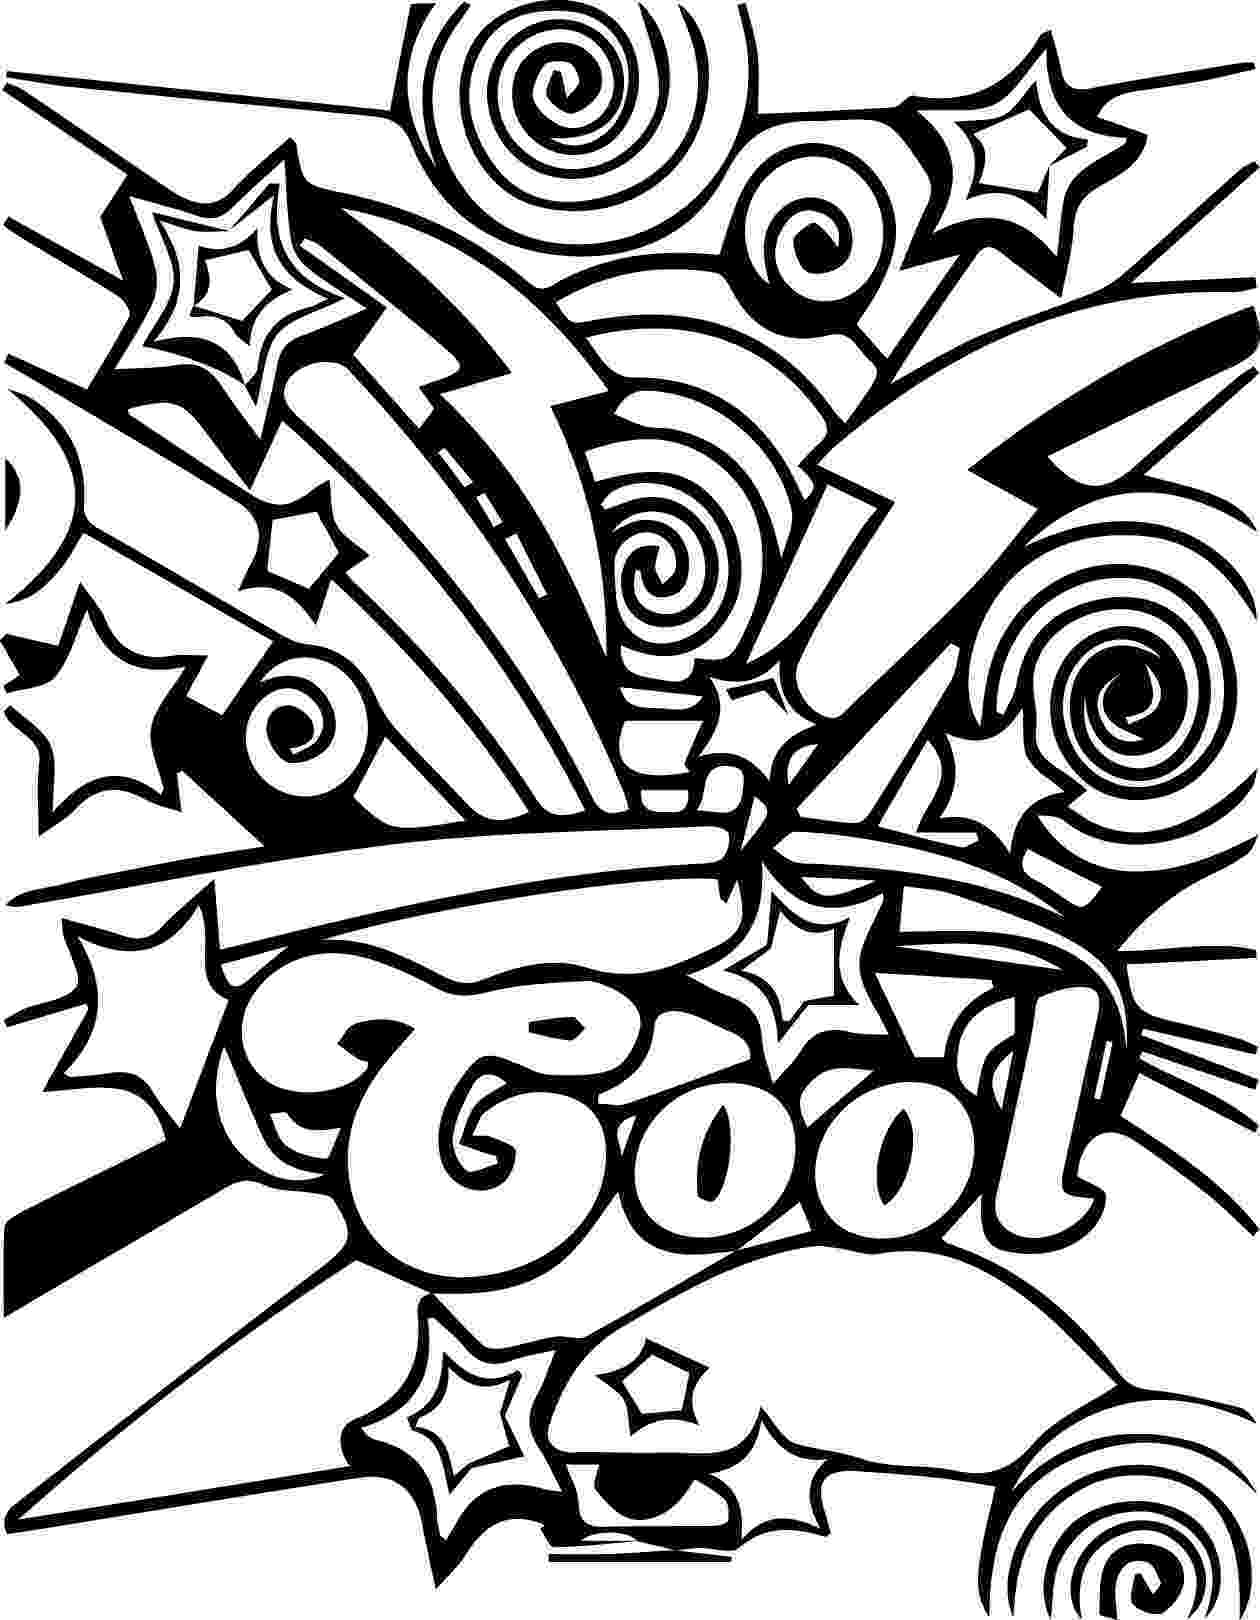 awesome coloring pages free full size coloring pages at getcoloringscom free coloring pages awesome